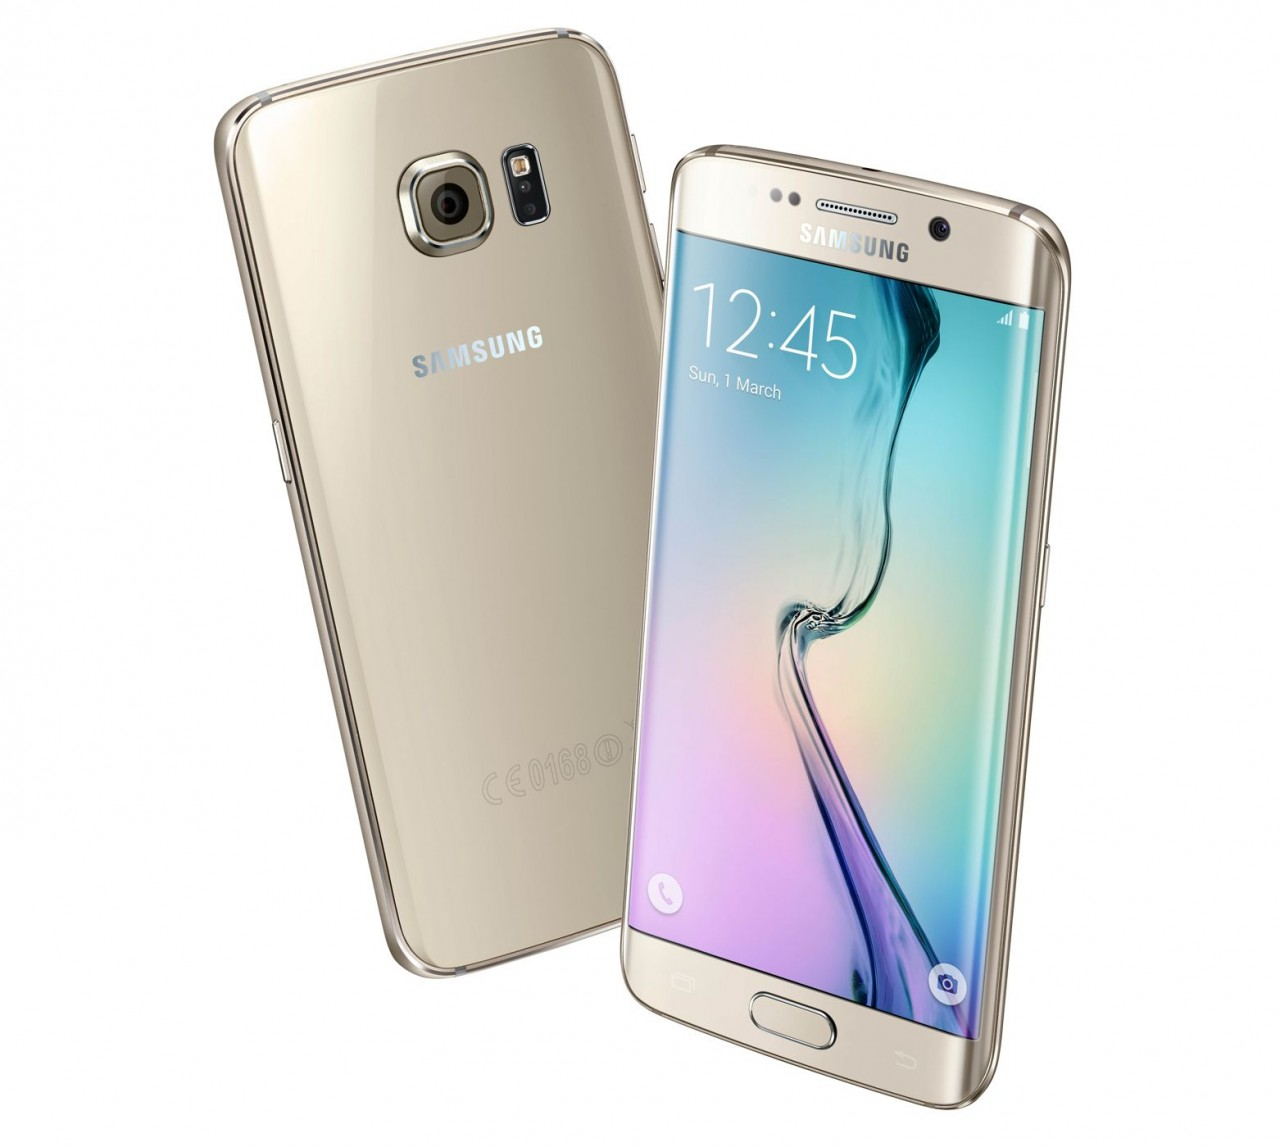 samsung galaxy s6 edge plus price in pakistan gold. Black Bedroom Furniture Sets. Home Design Ideas